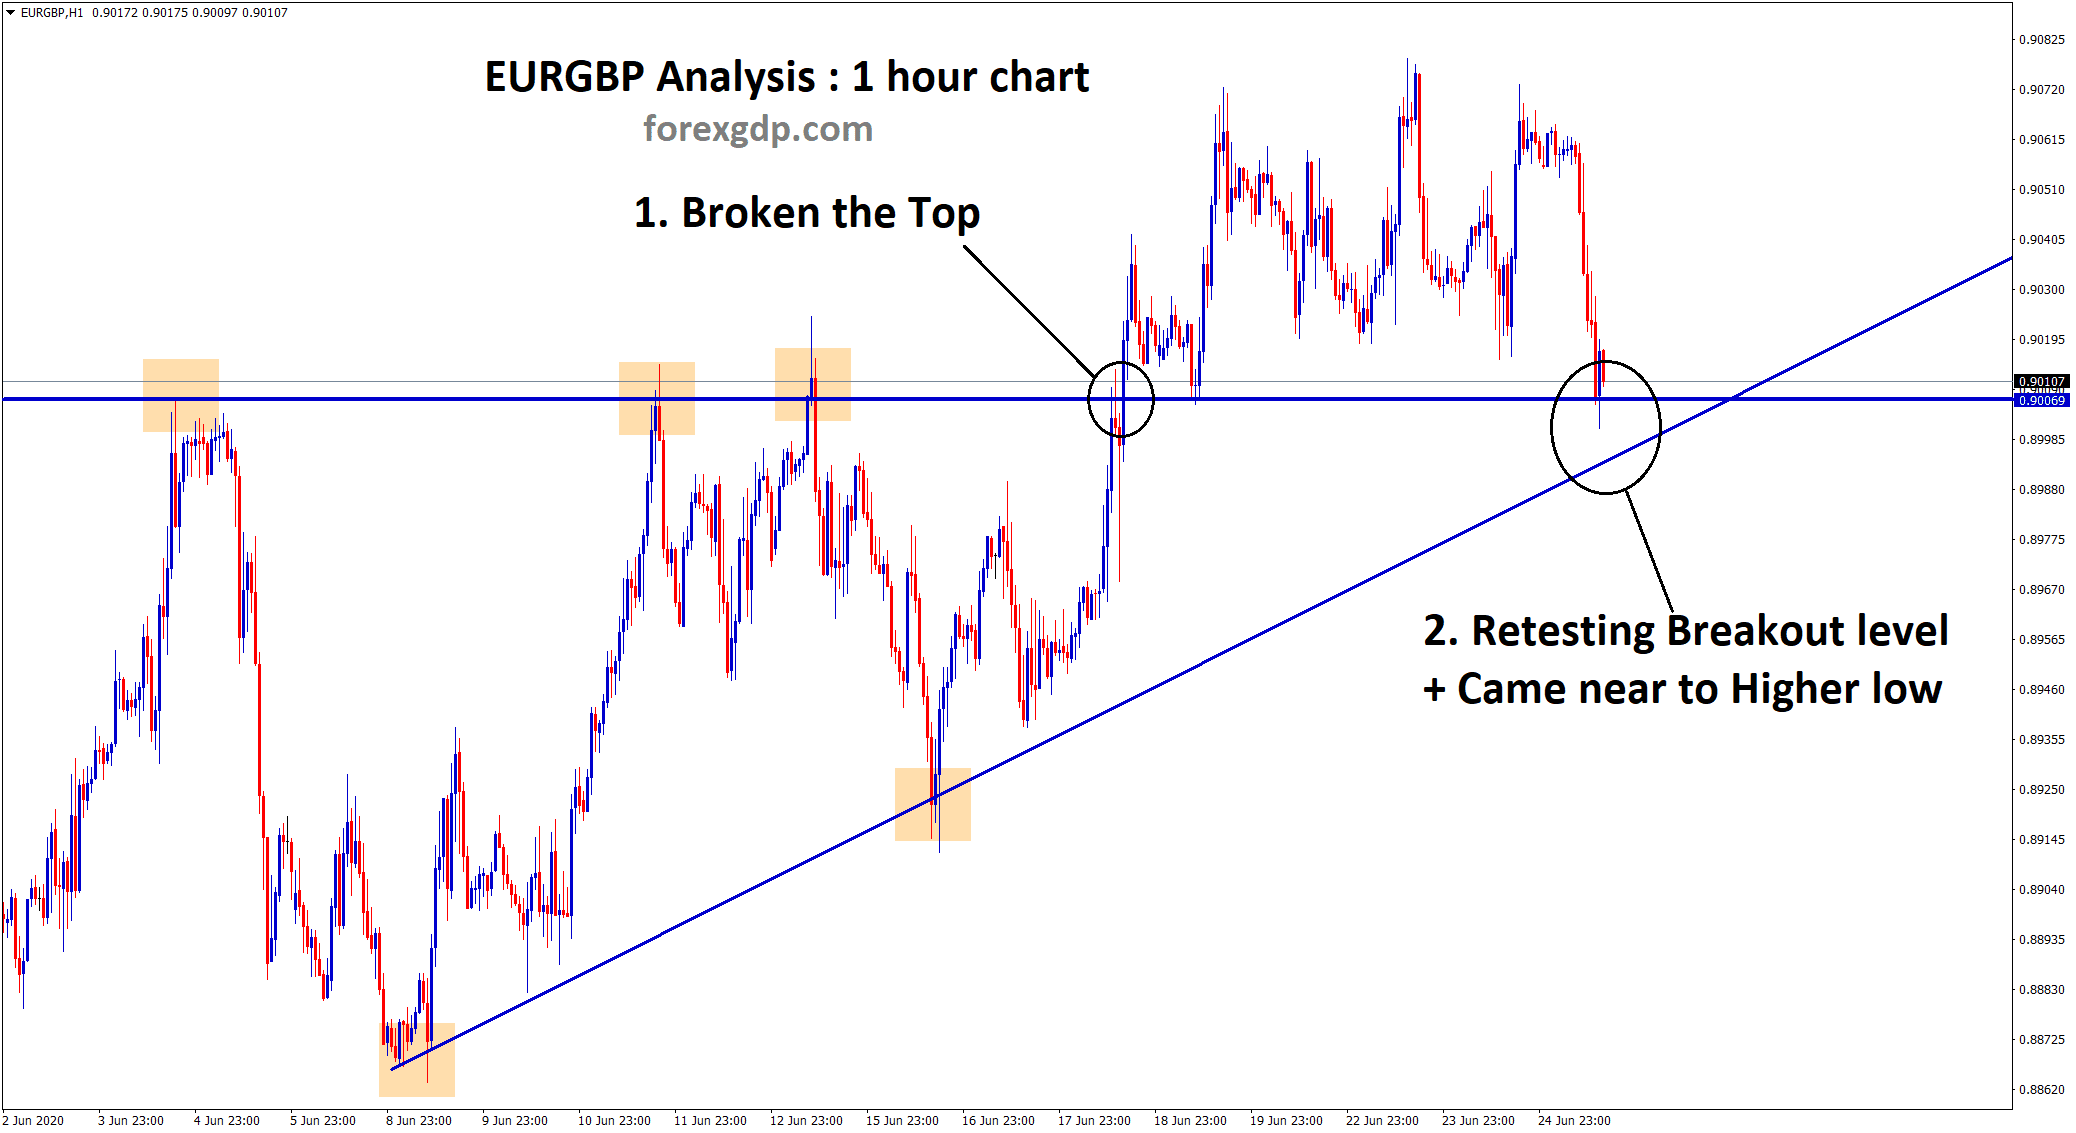 EURGBP broken the Ascending Triangle top retesting higher low